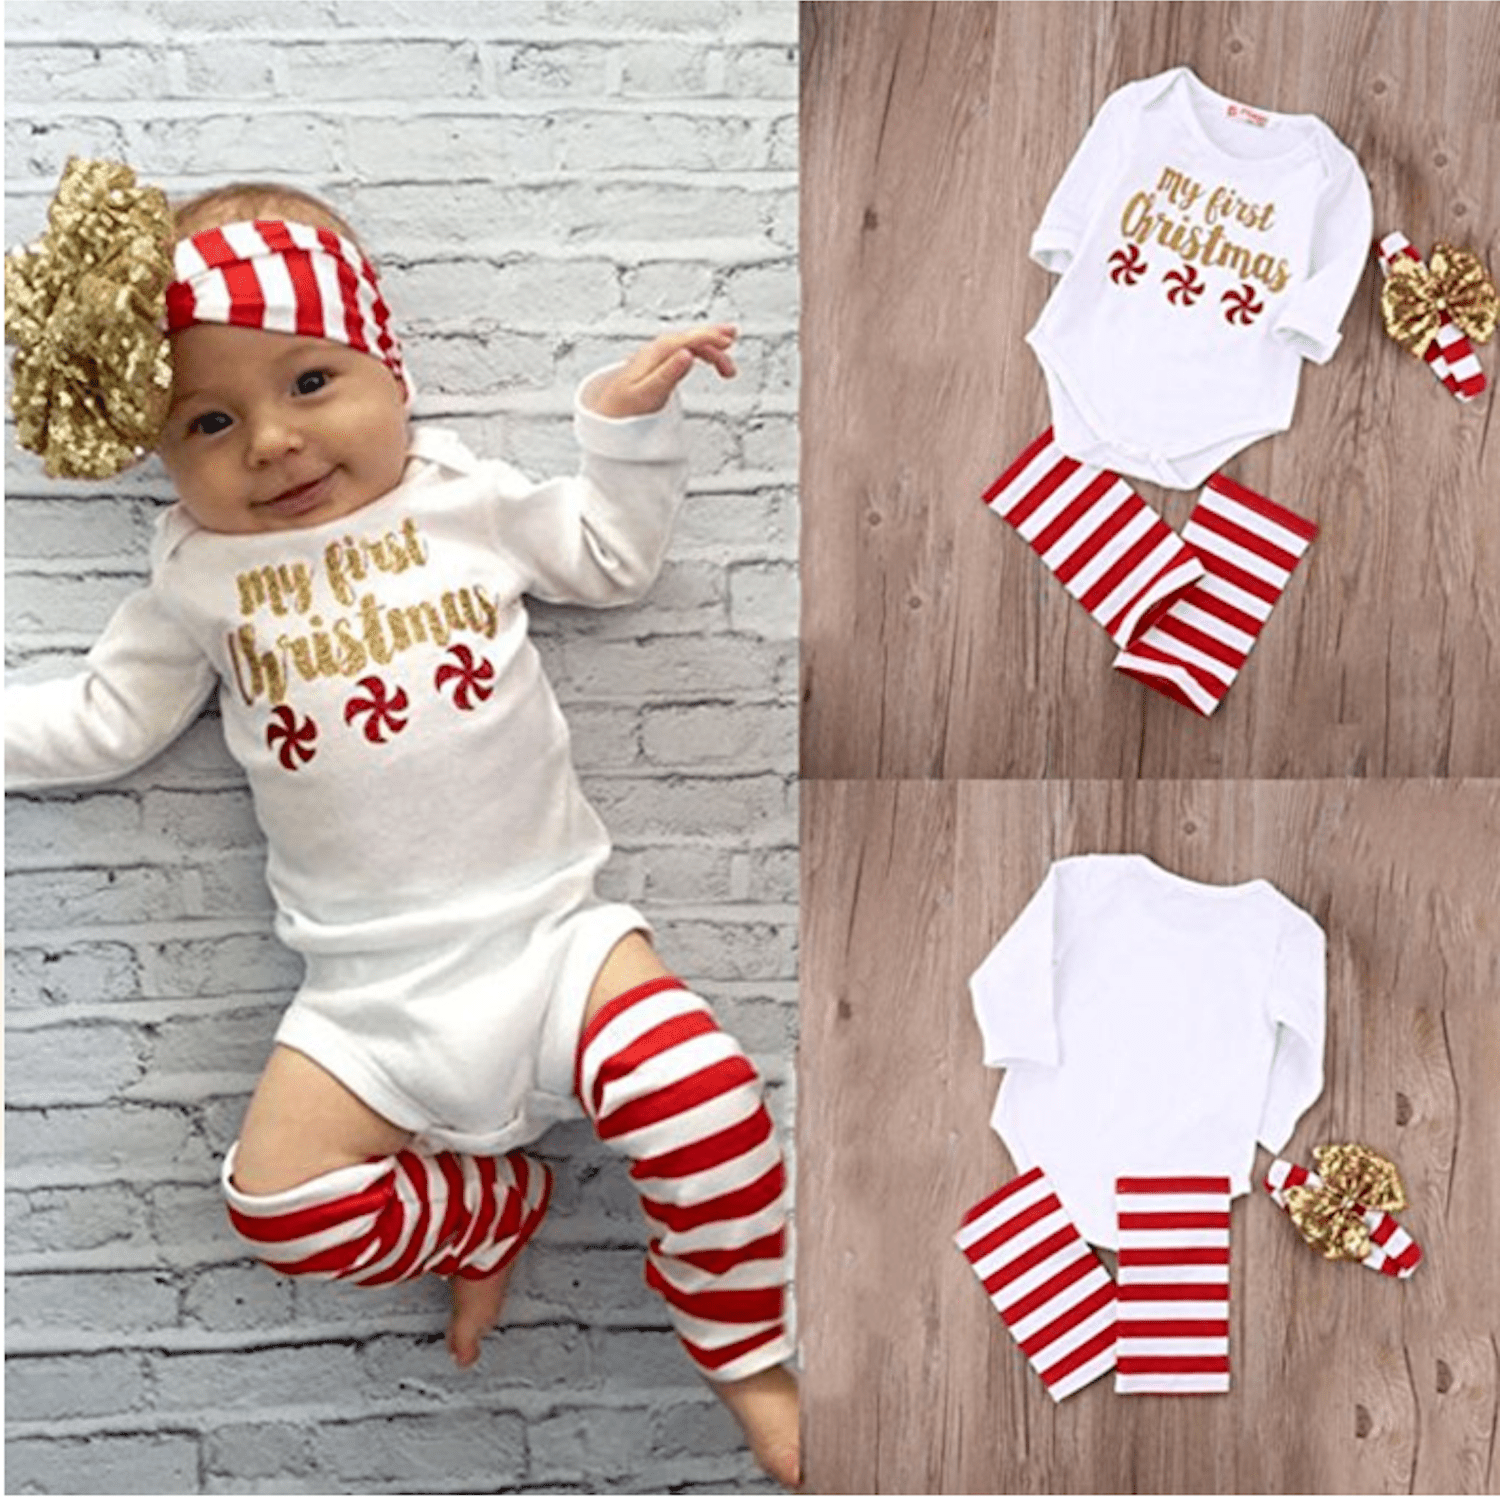 a74b4c48f70f Weixinbuy Newborn Baby Girl My First Christmas Pattern Bodysuit Romper  Jumpsuit Outfit. Amazon.com